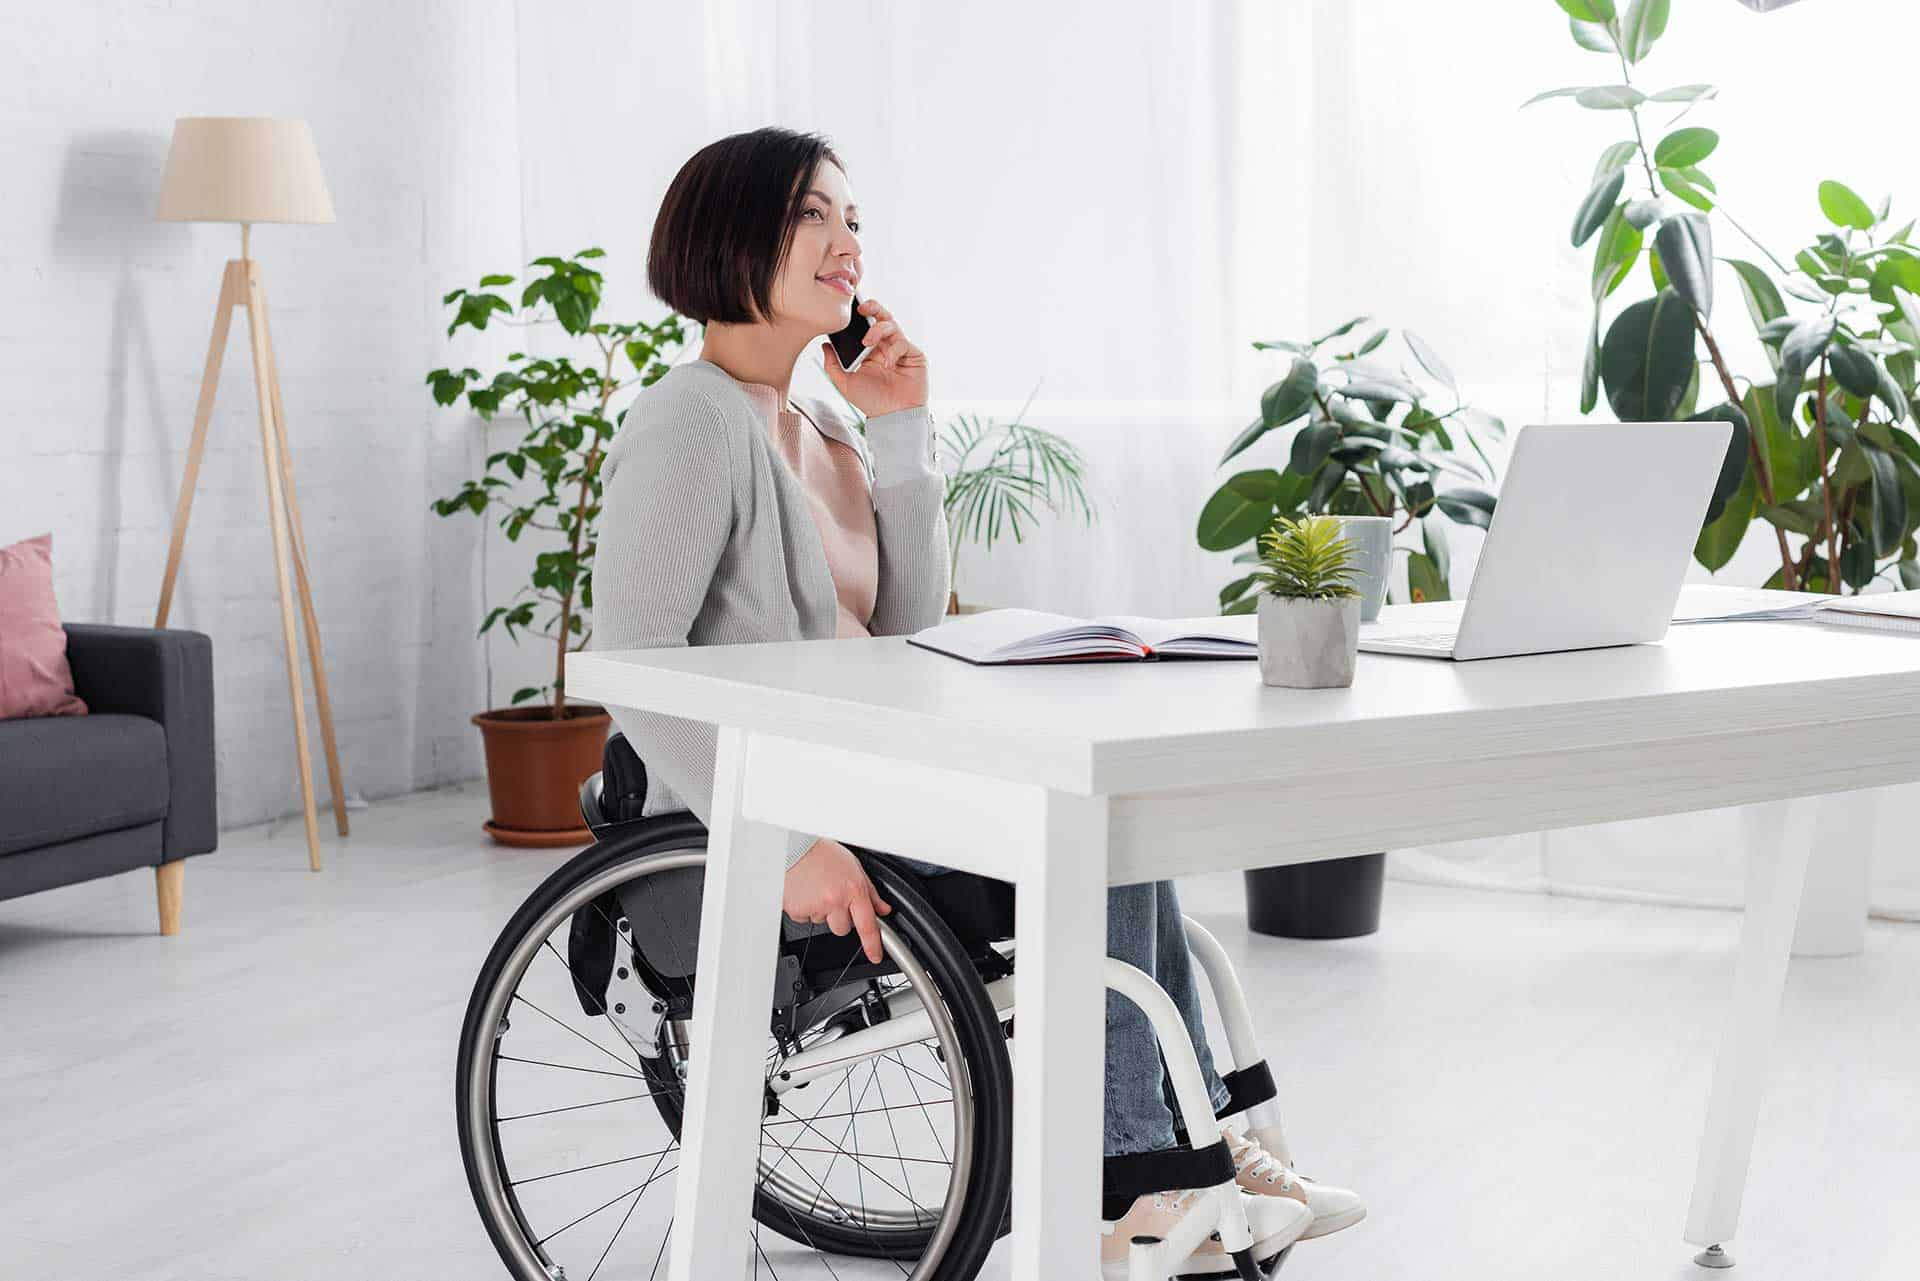 Women in wheelchair on phone with laptop